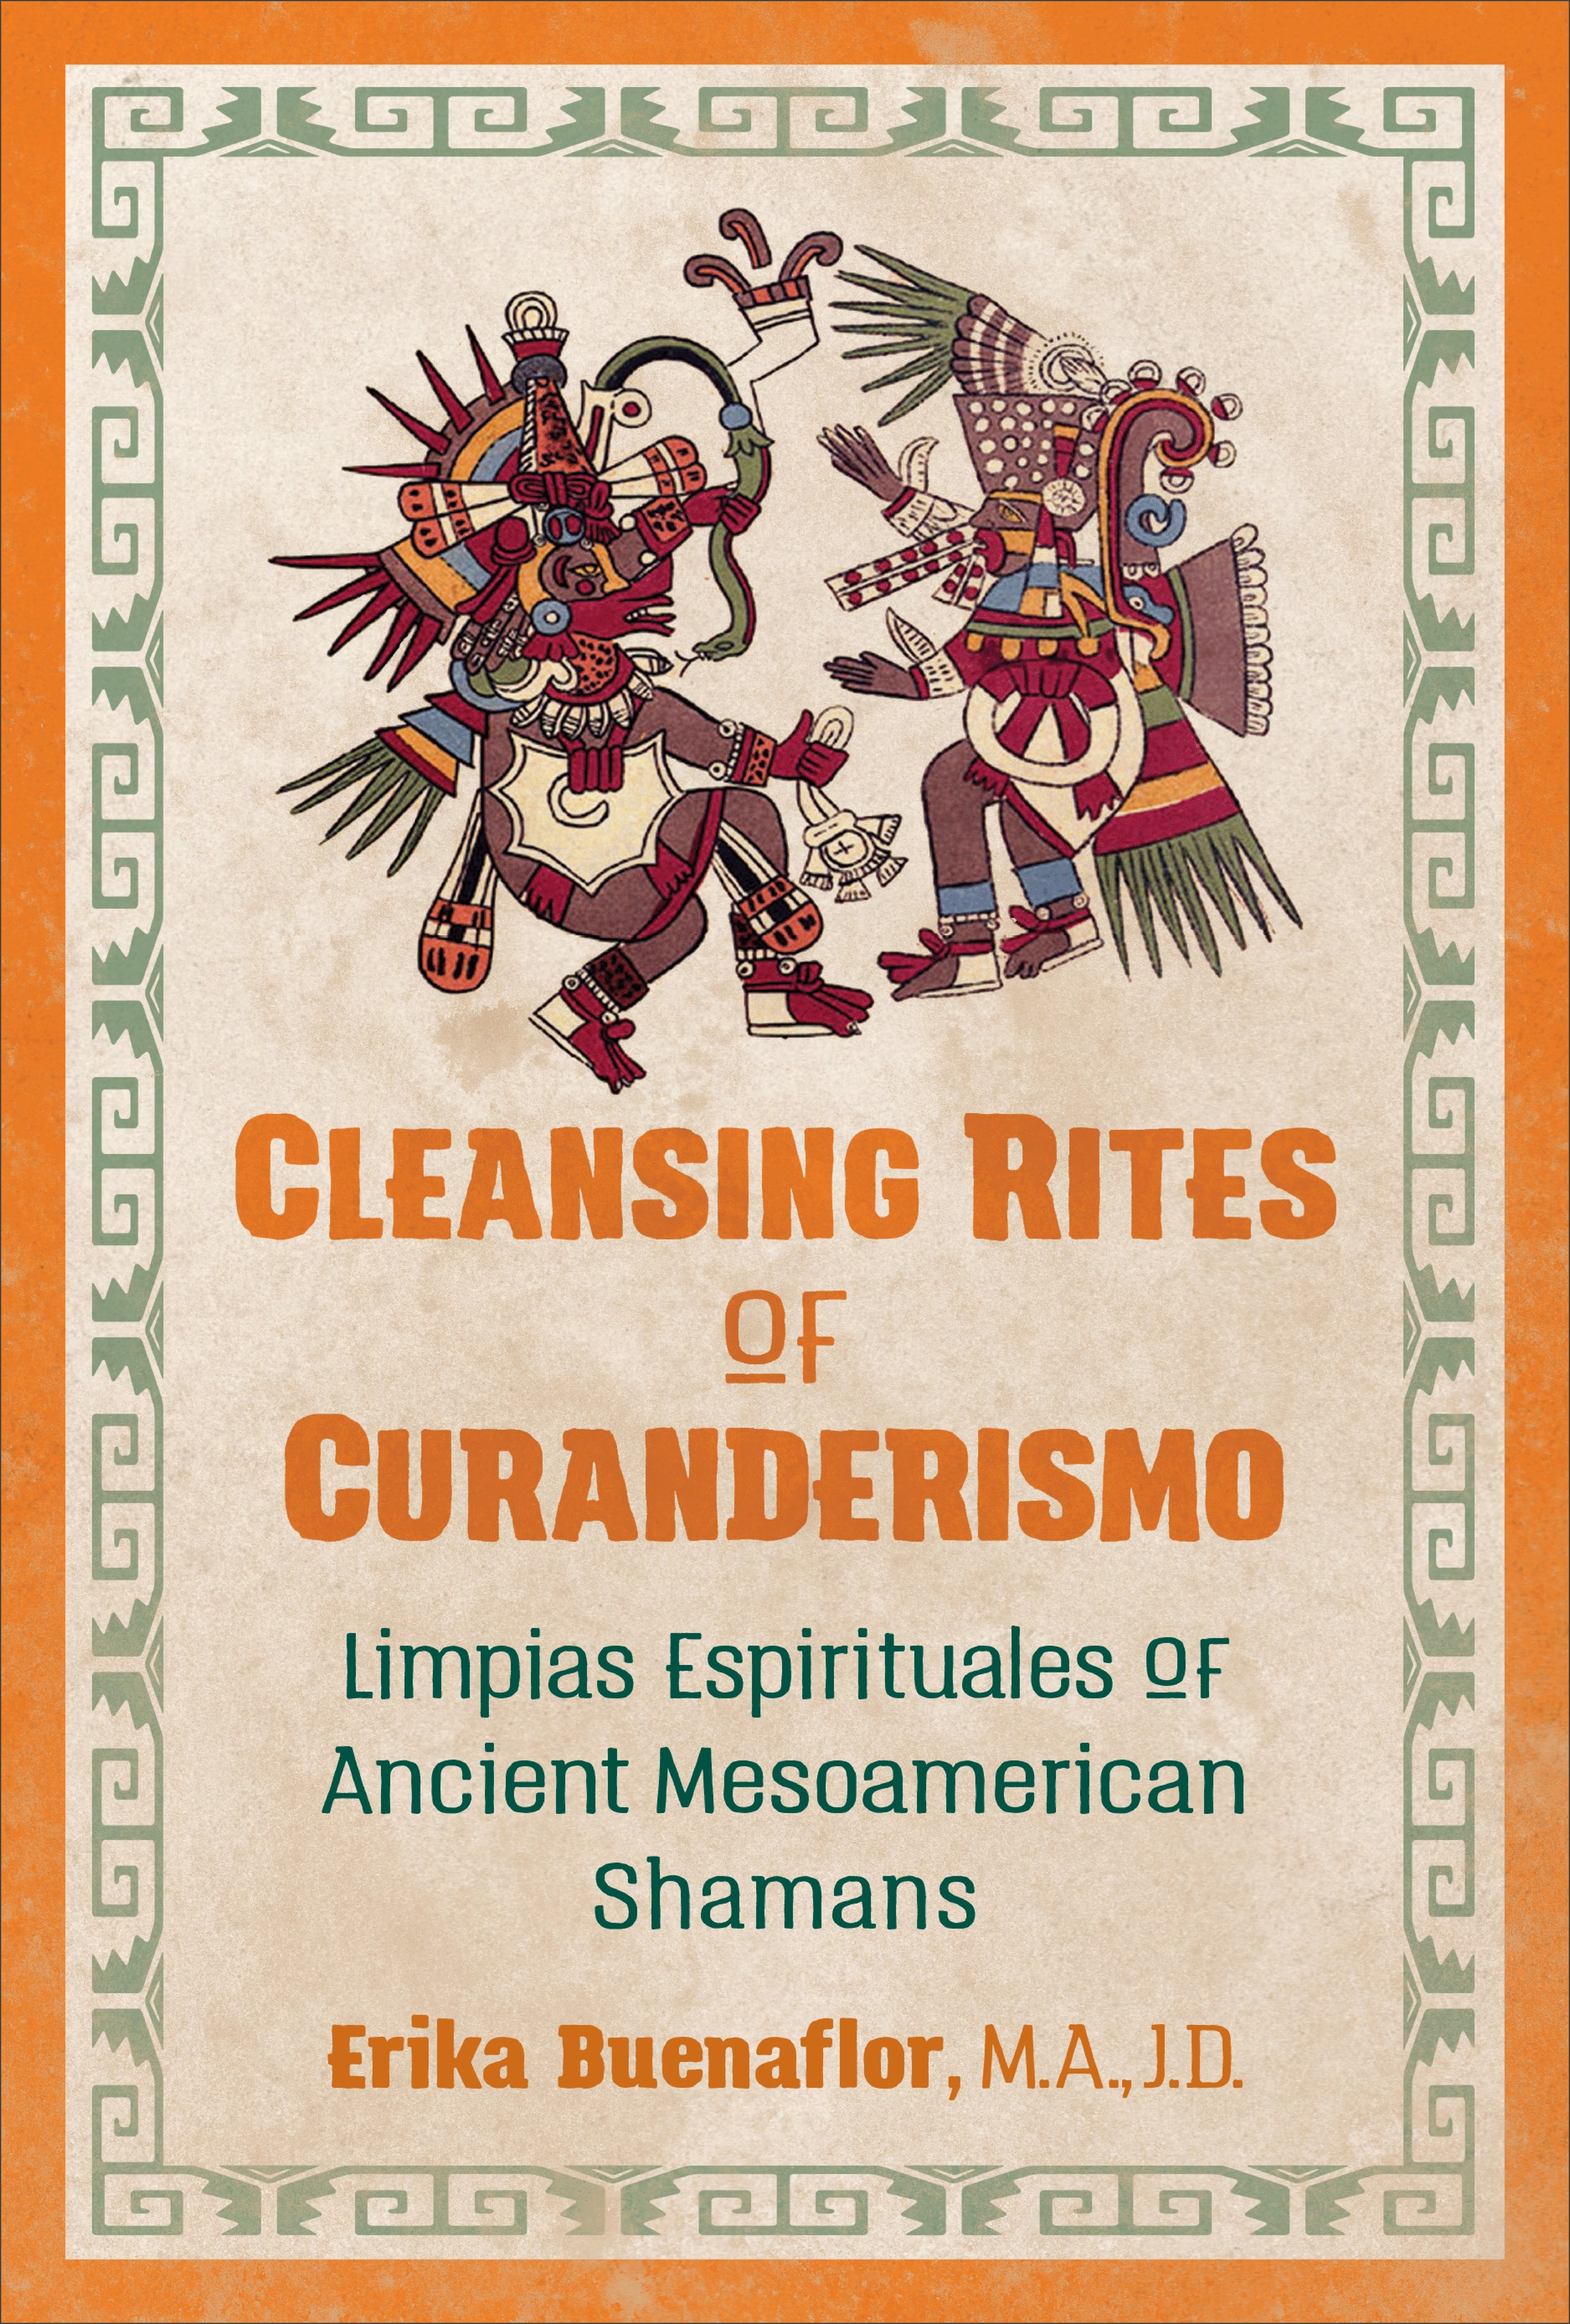 Cleansing Rites of Curanderismo with Erika Buenaflor